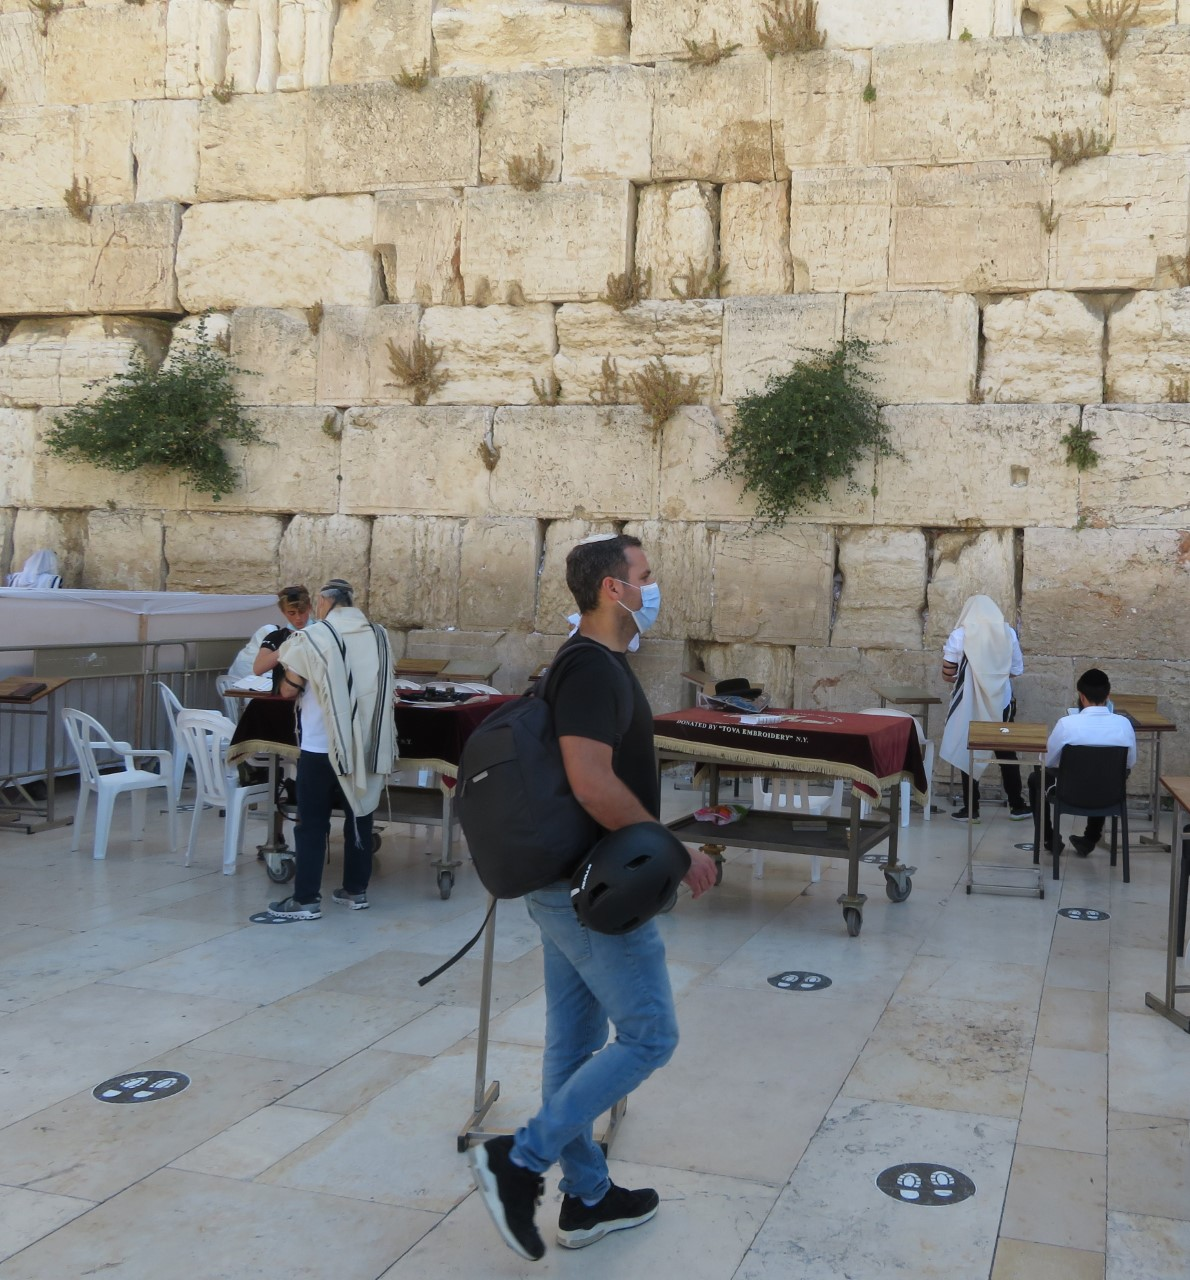 Practicing social distancing, an Israeli man waits his turn to pray at the Western Wall in Jerusalem.